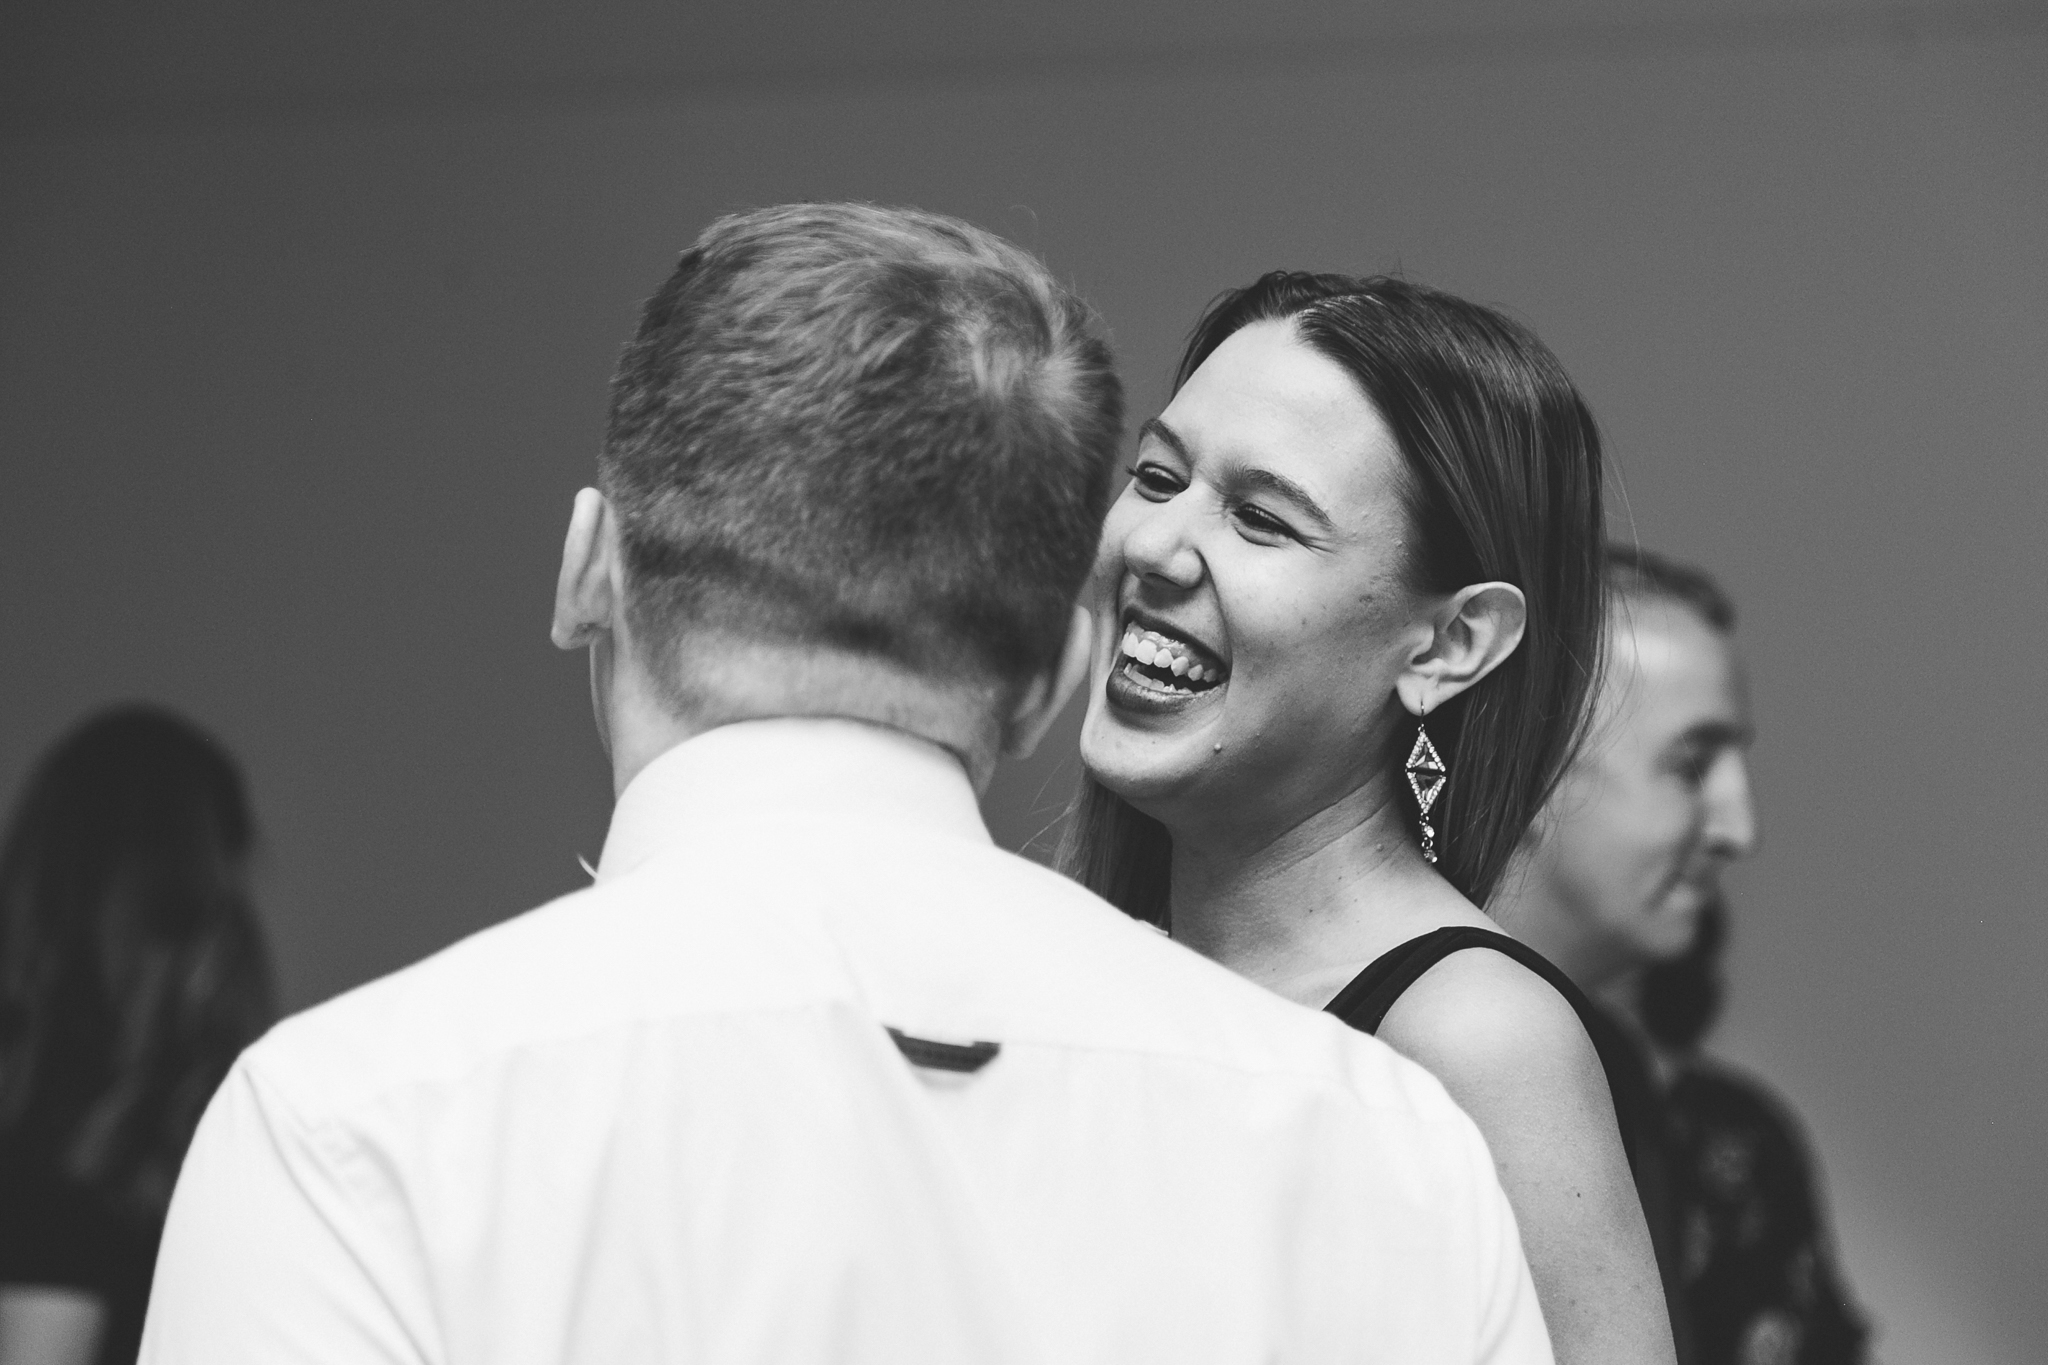 lethbridge-photographer-love-and-be-loved-photography-rocky-mountain-turf-club-reception-katie-kelli-wedding-picture-image-photo-438.jpg